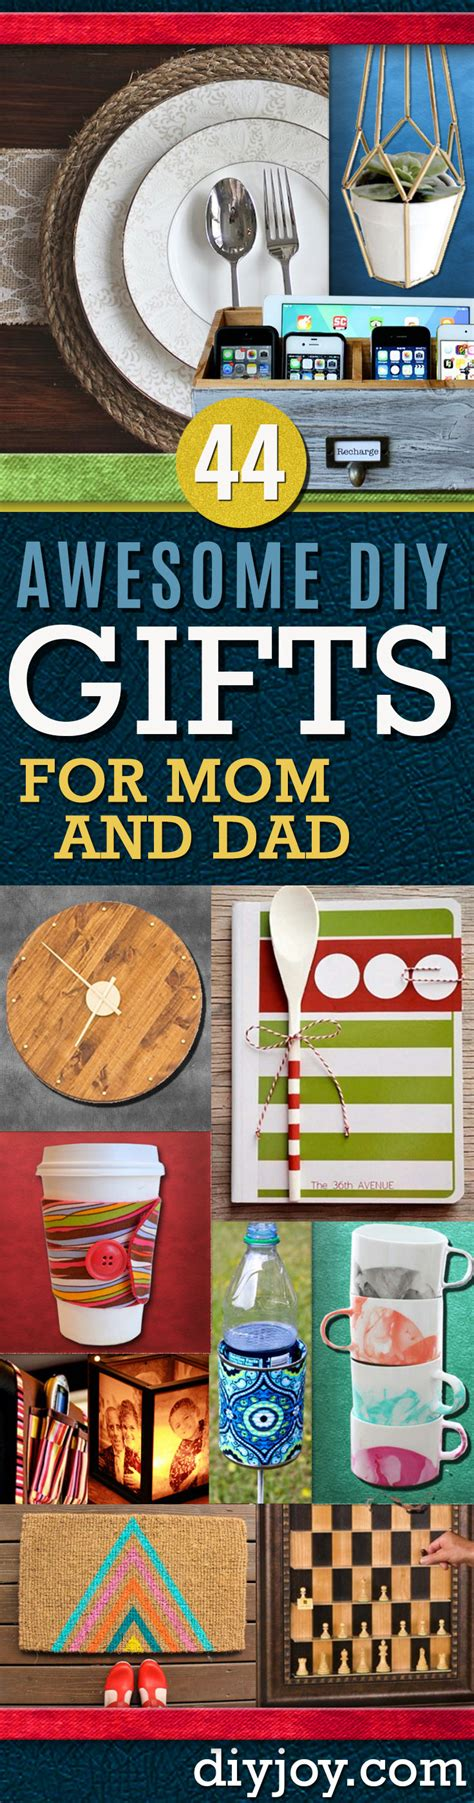 great xmas gifts for dad awesome diy gift ideas and will